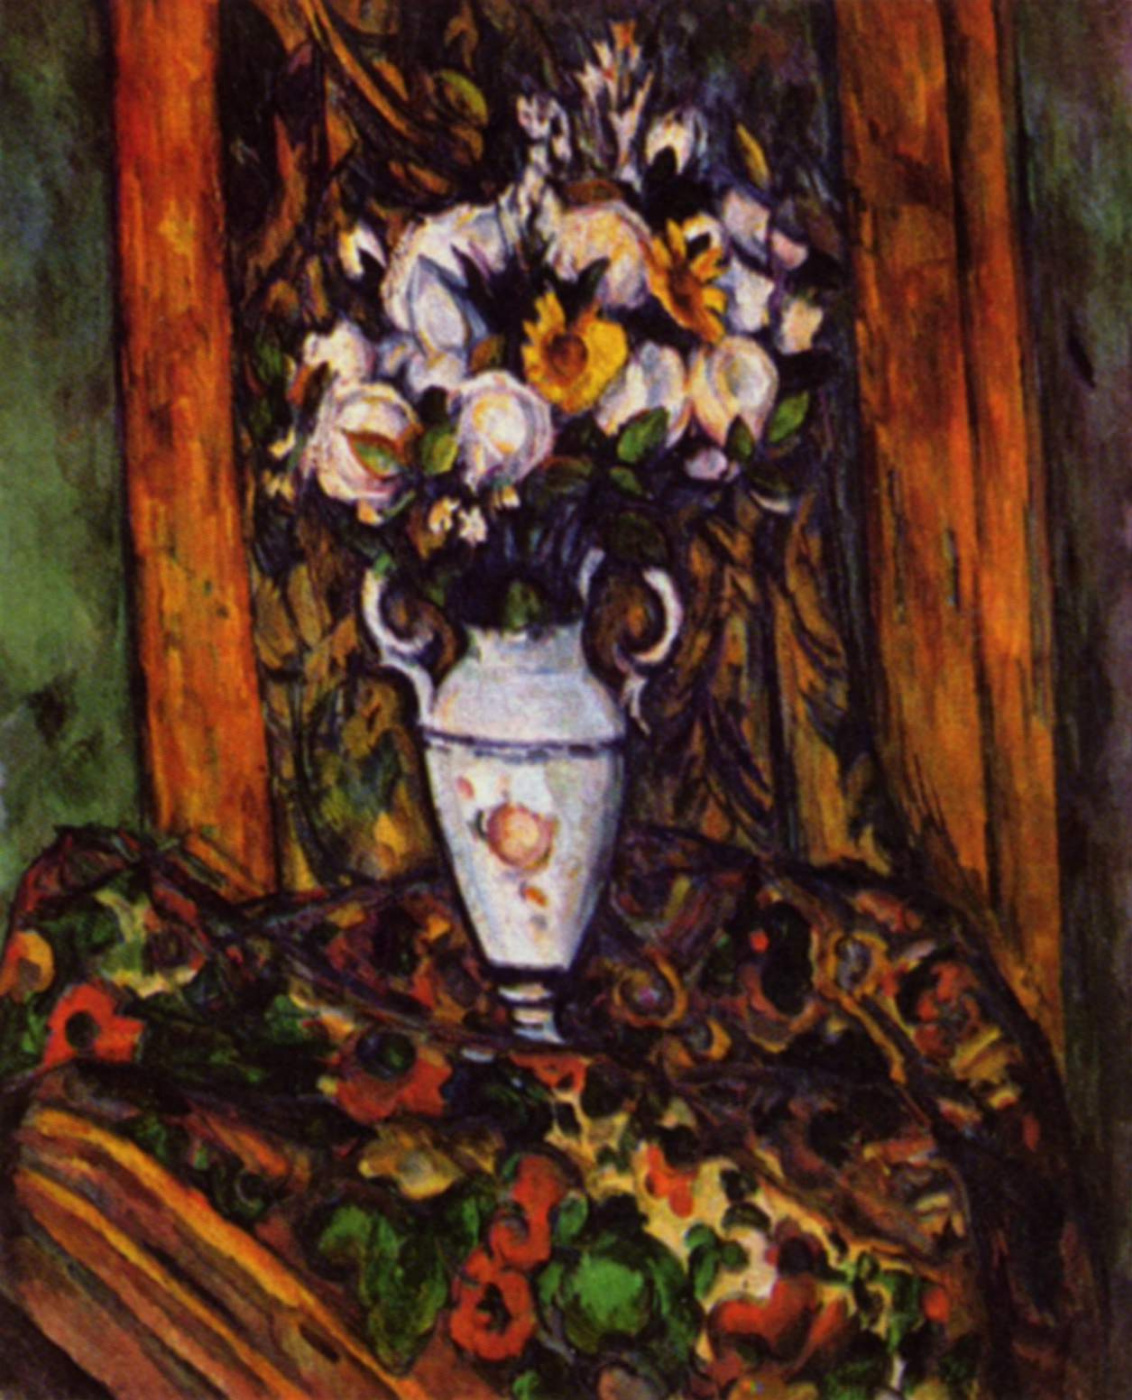 Paul Cezanne. Still life with vase with flowers